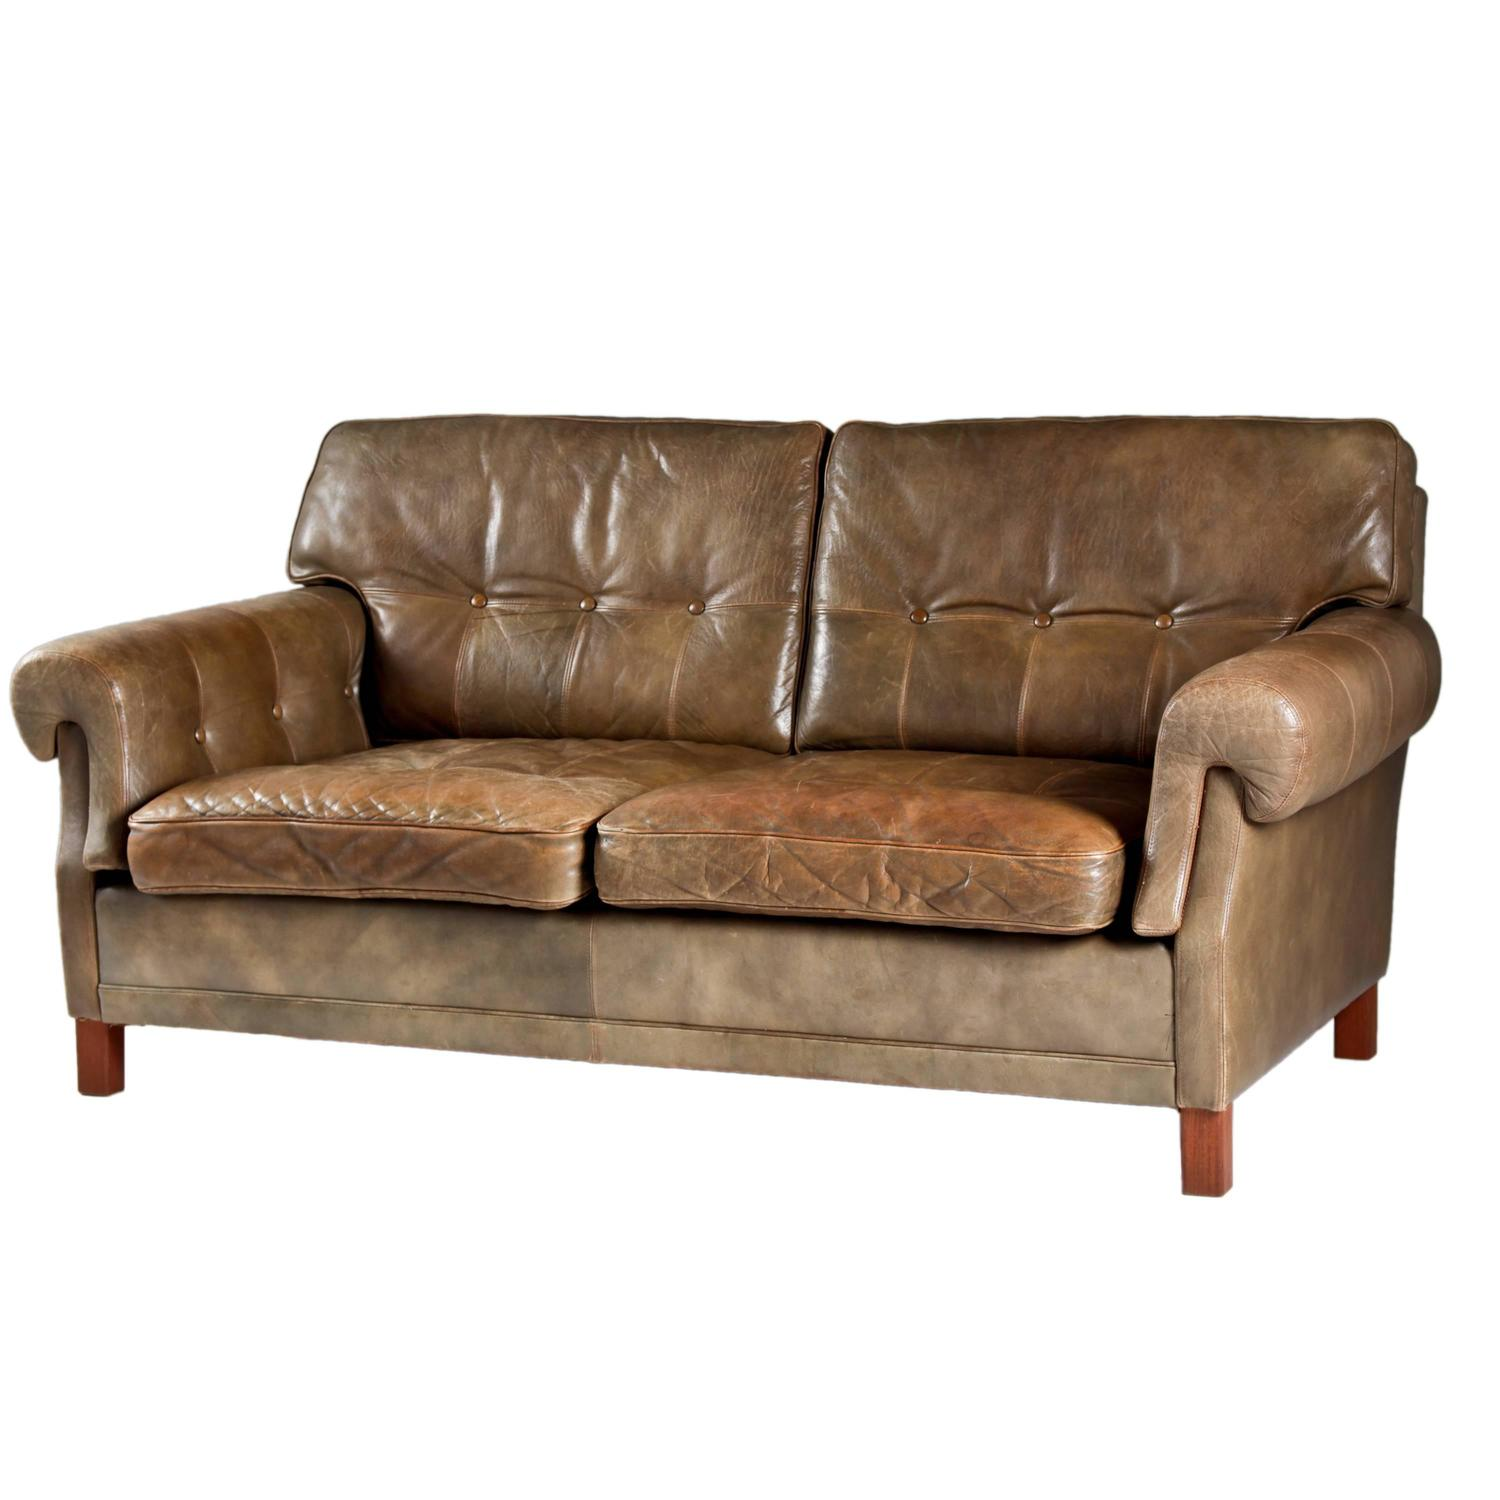 Recondition Leather Sofa Hotornotlive